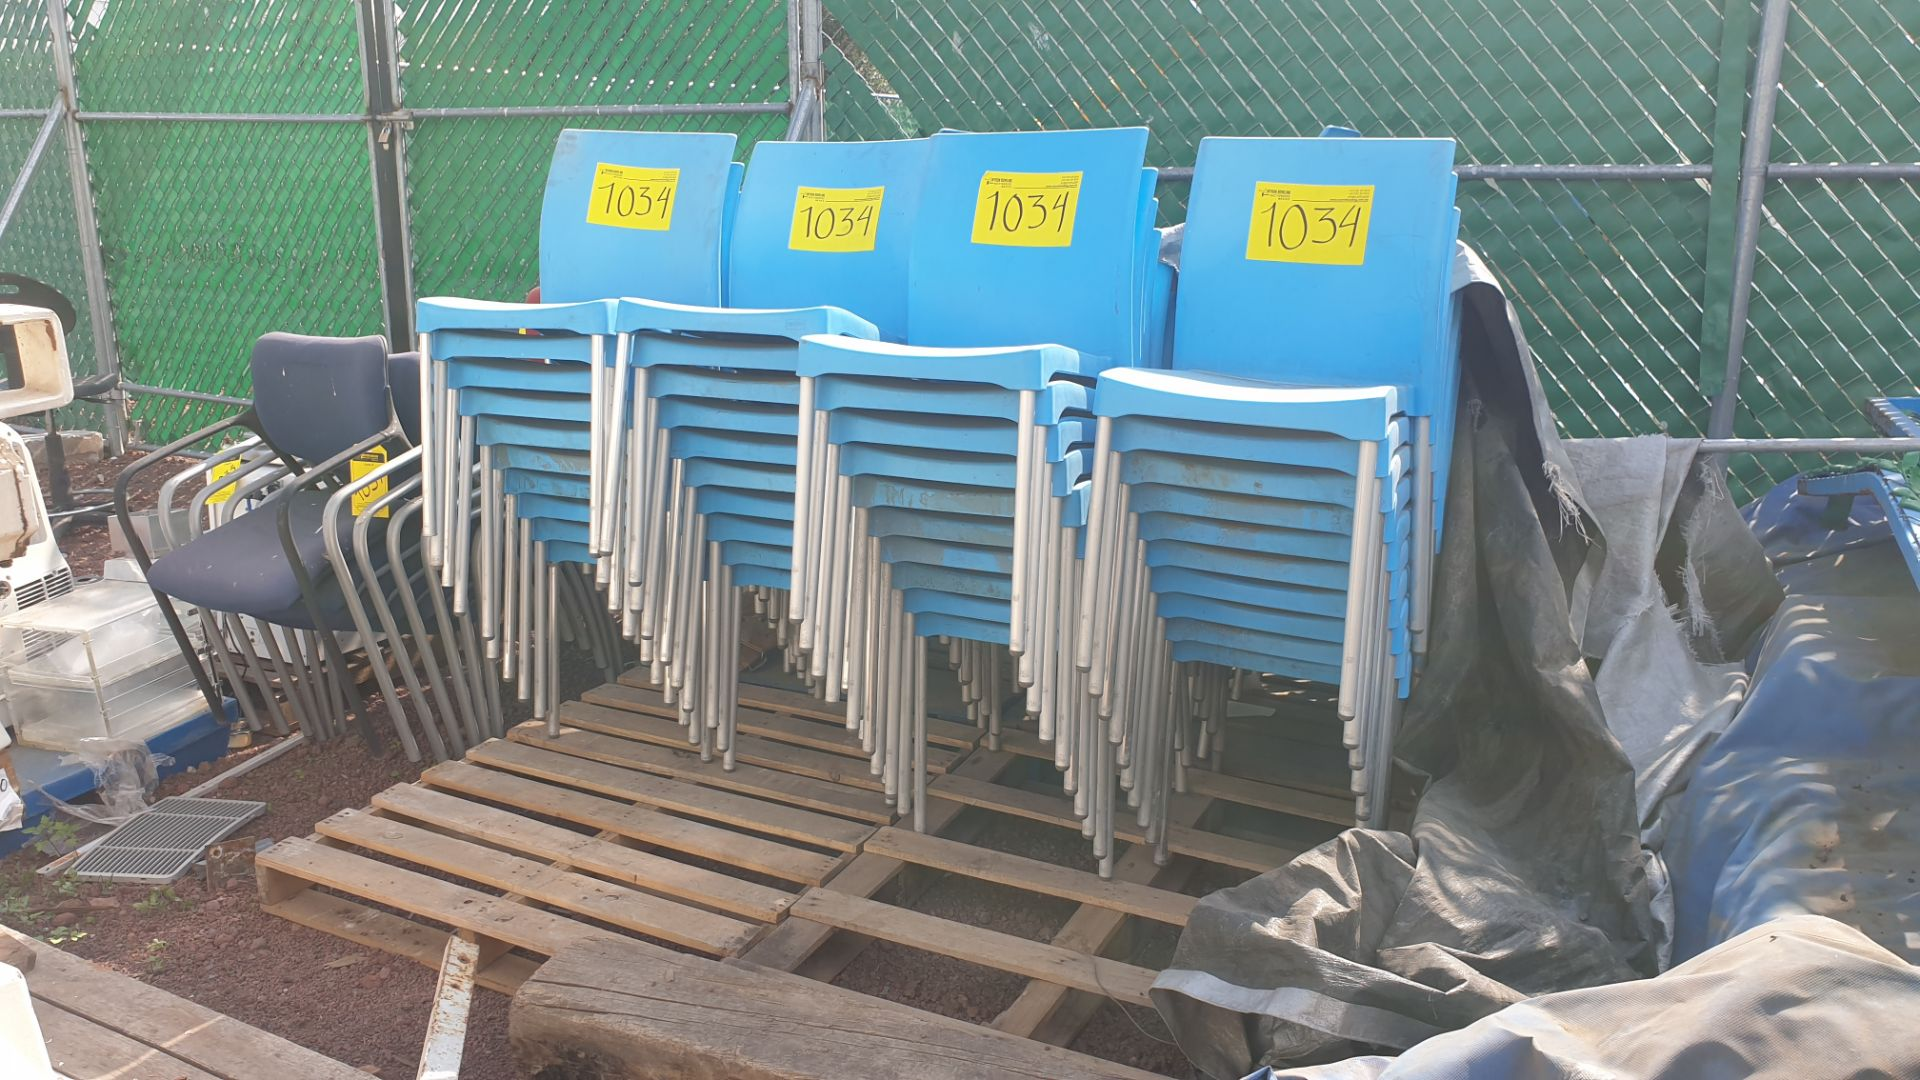 Lot of 40 blue plastic chairs, includes 7 metal office chairs with upholstered back and seat - Image 2 of 6